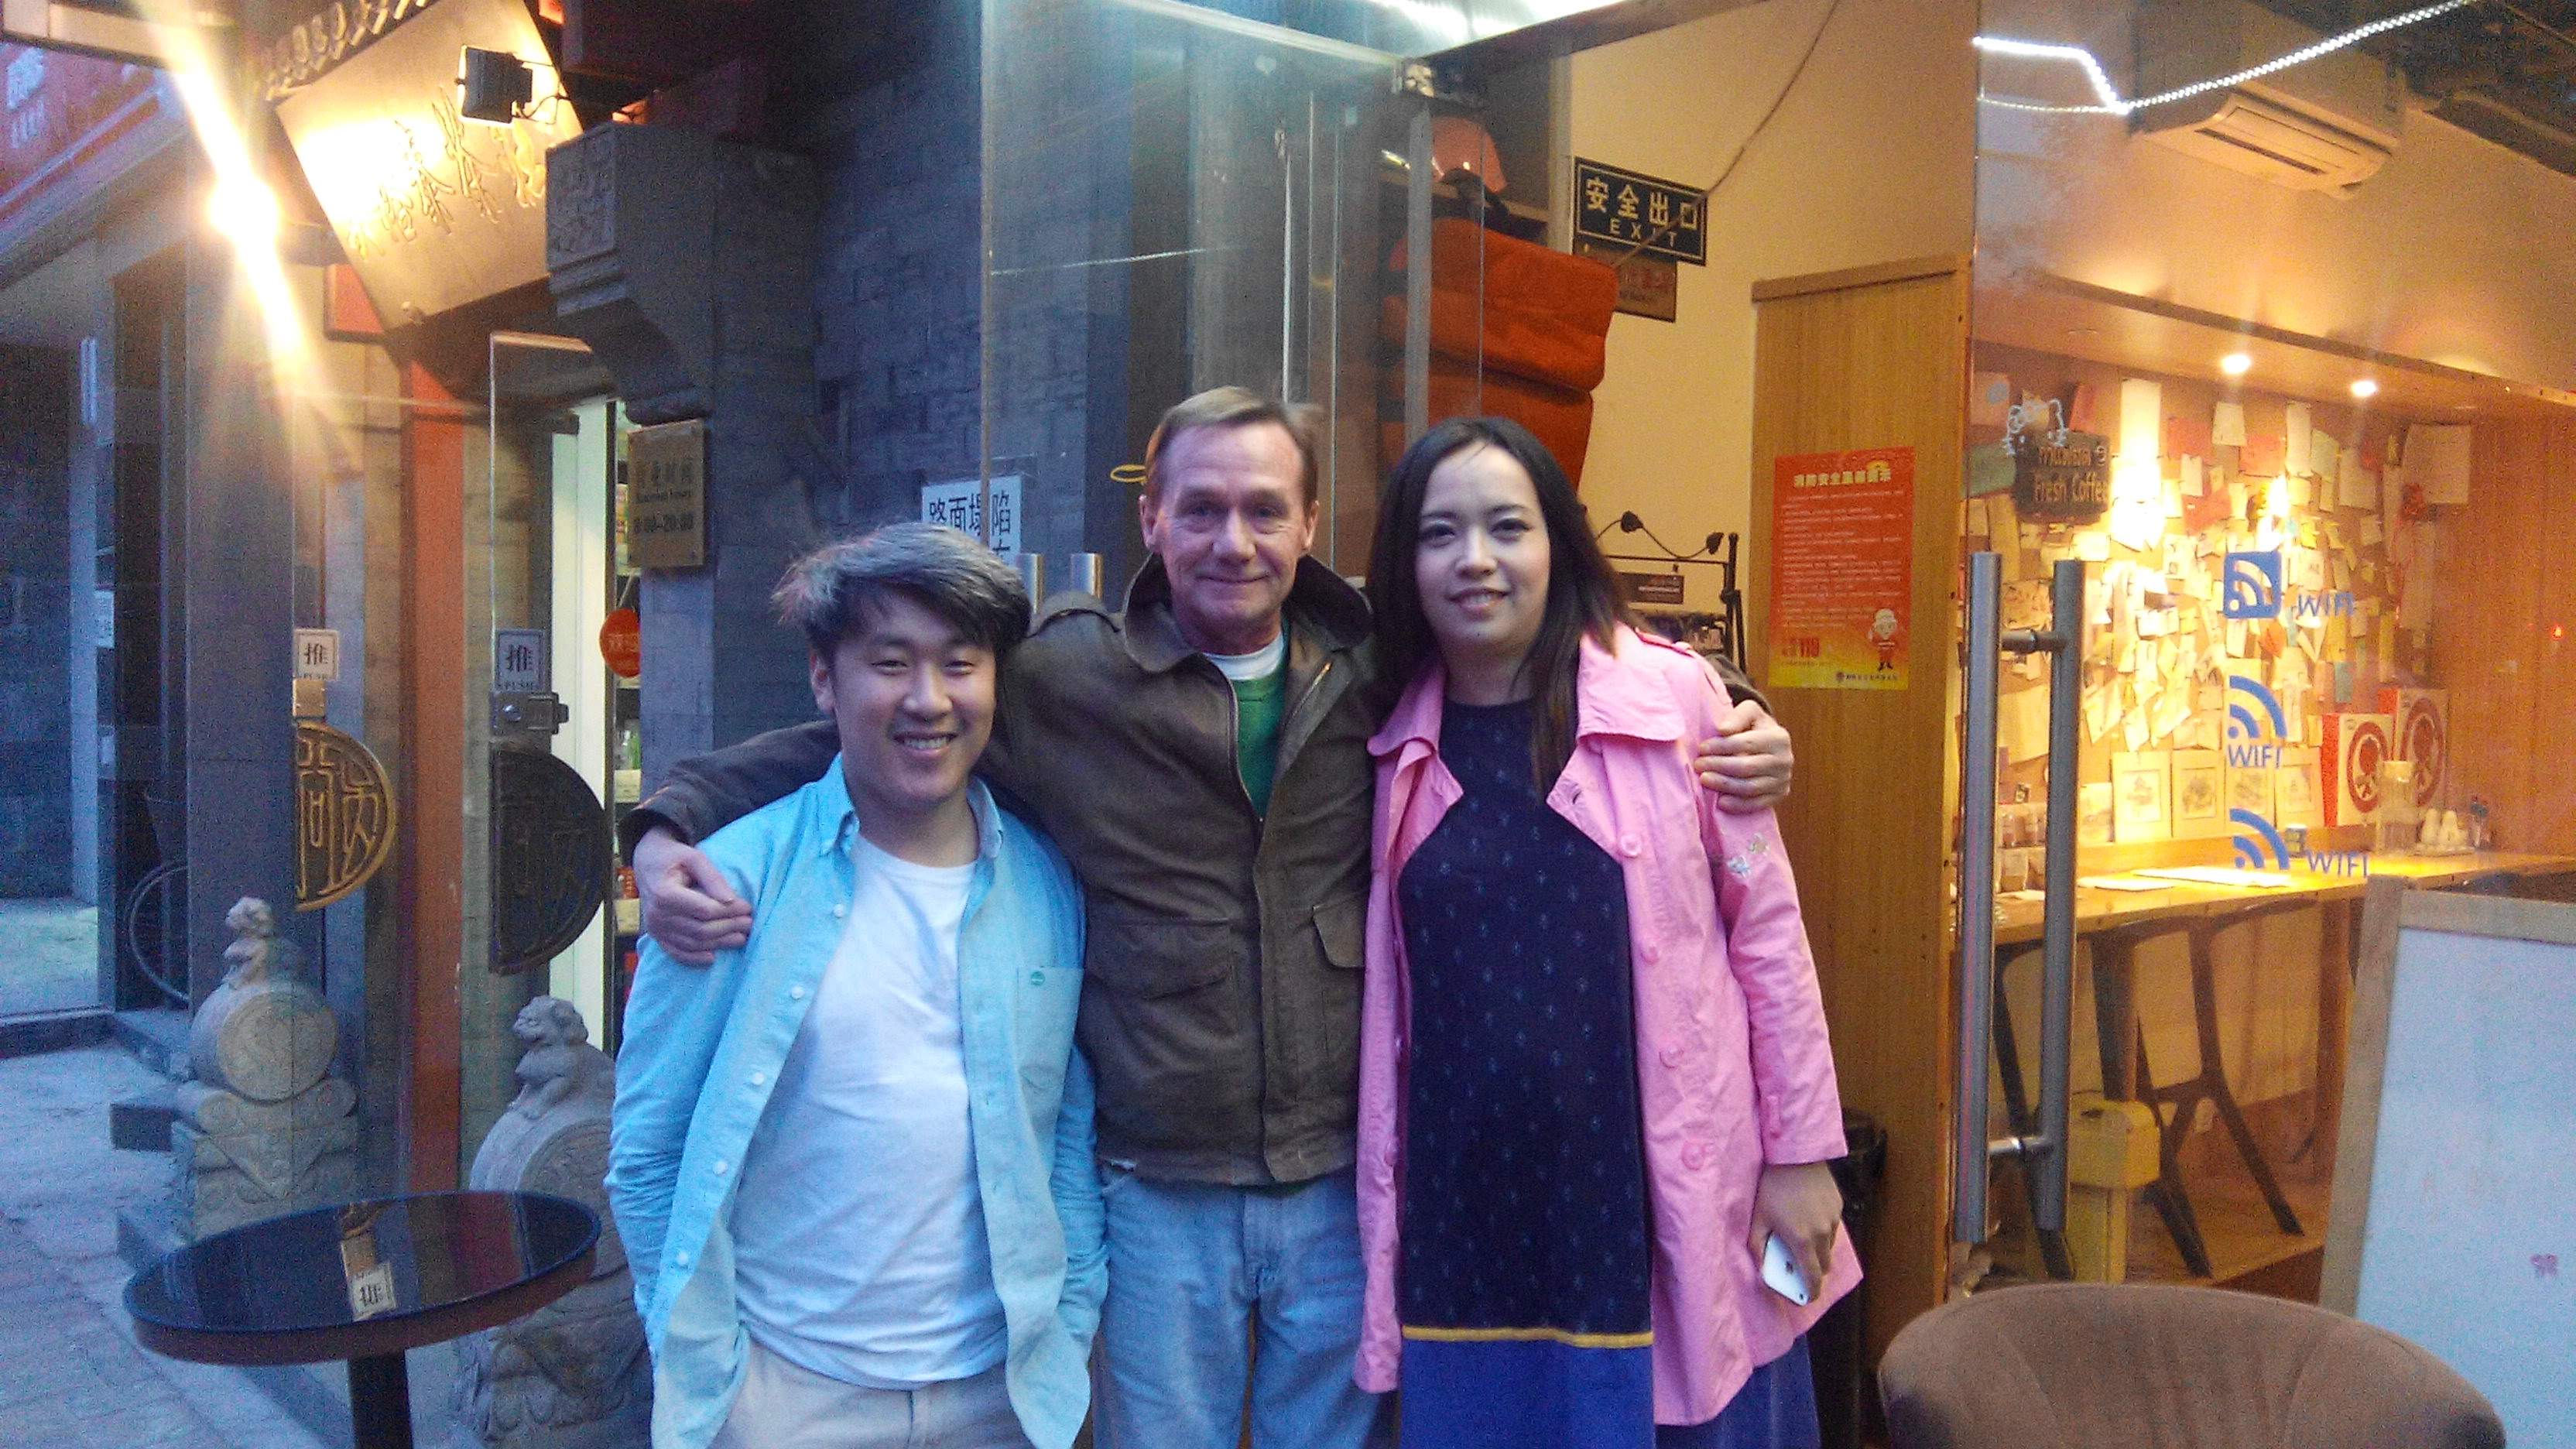 Denis with Lisa and Ethan in front of Tomato cafe in Beijing.